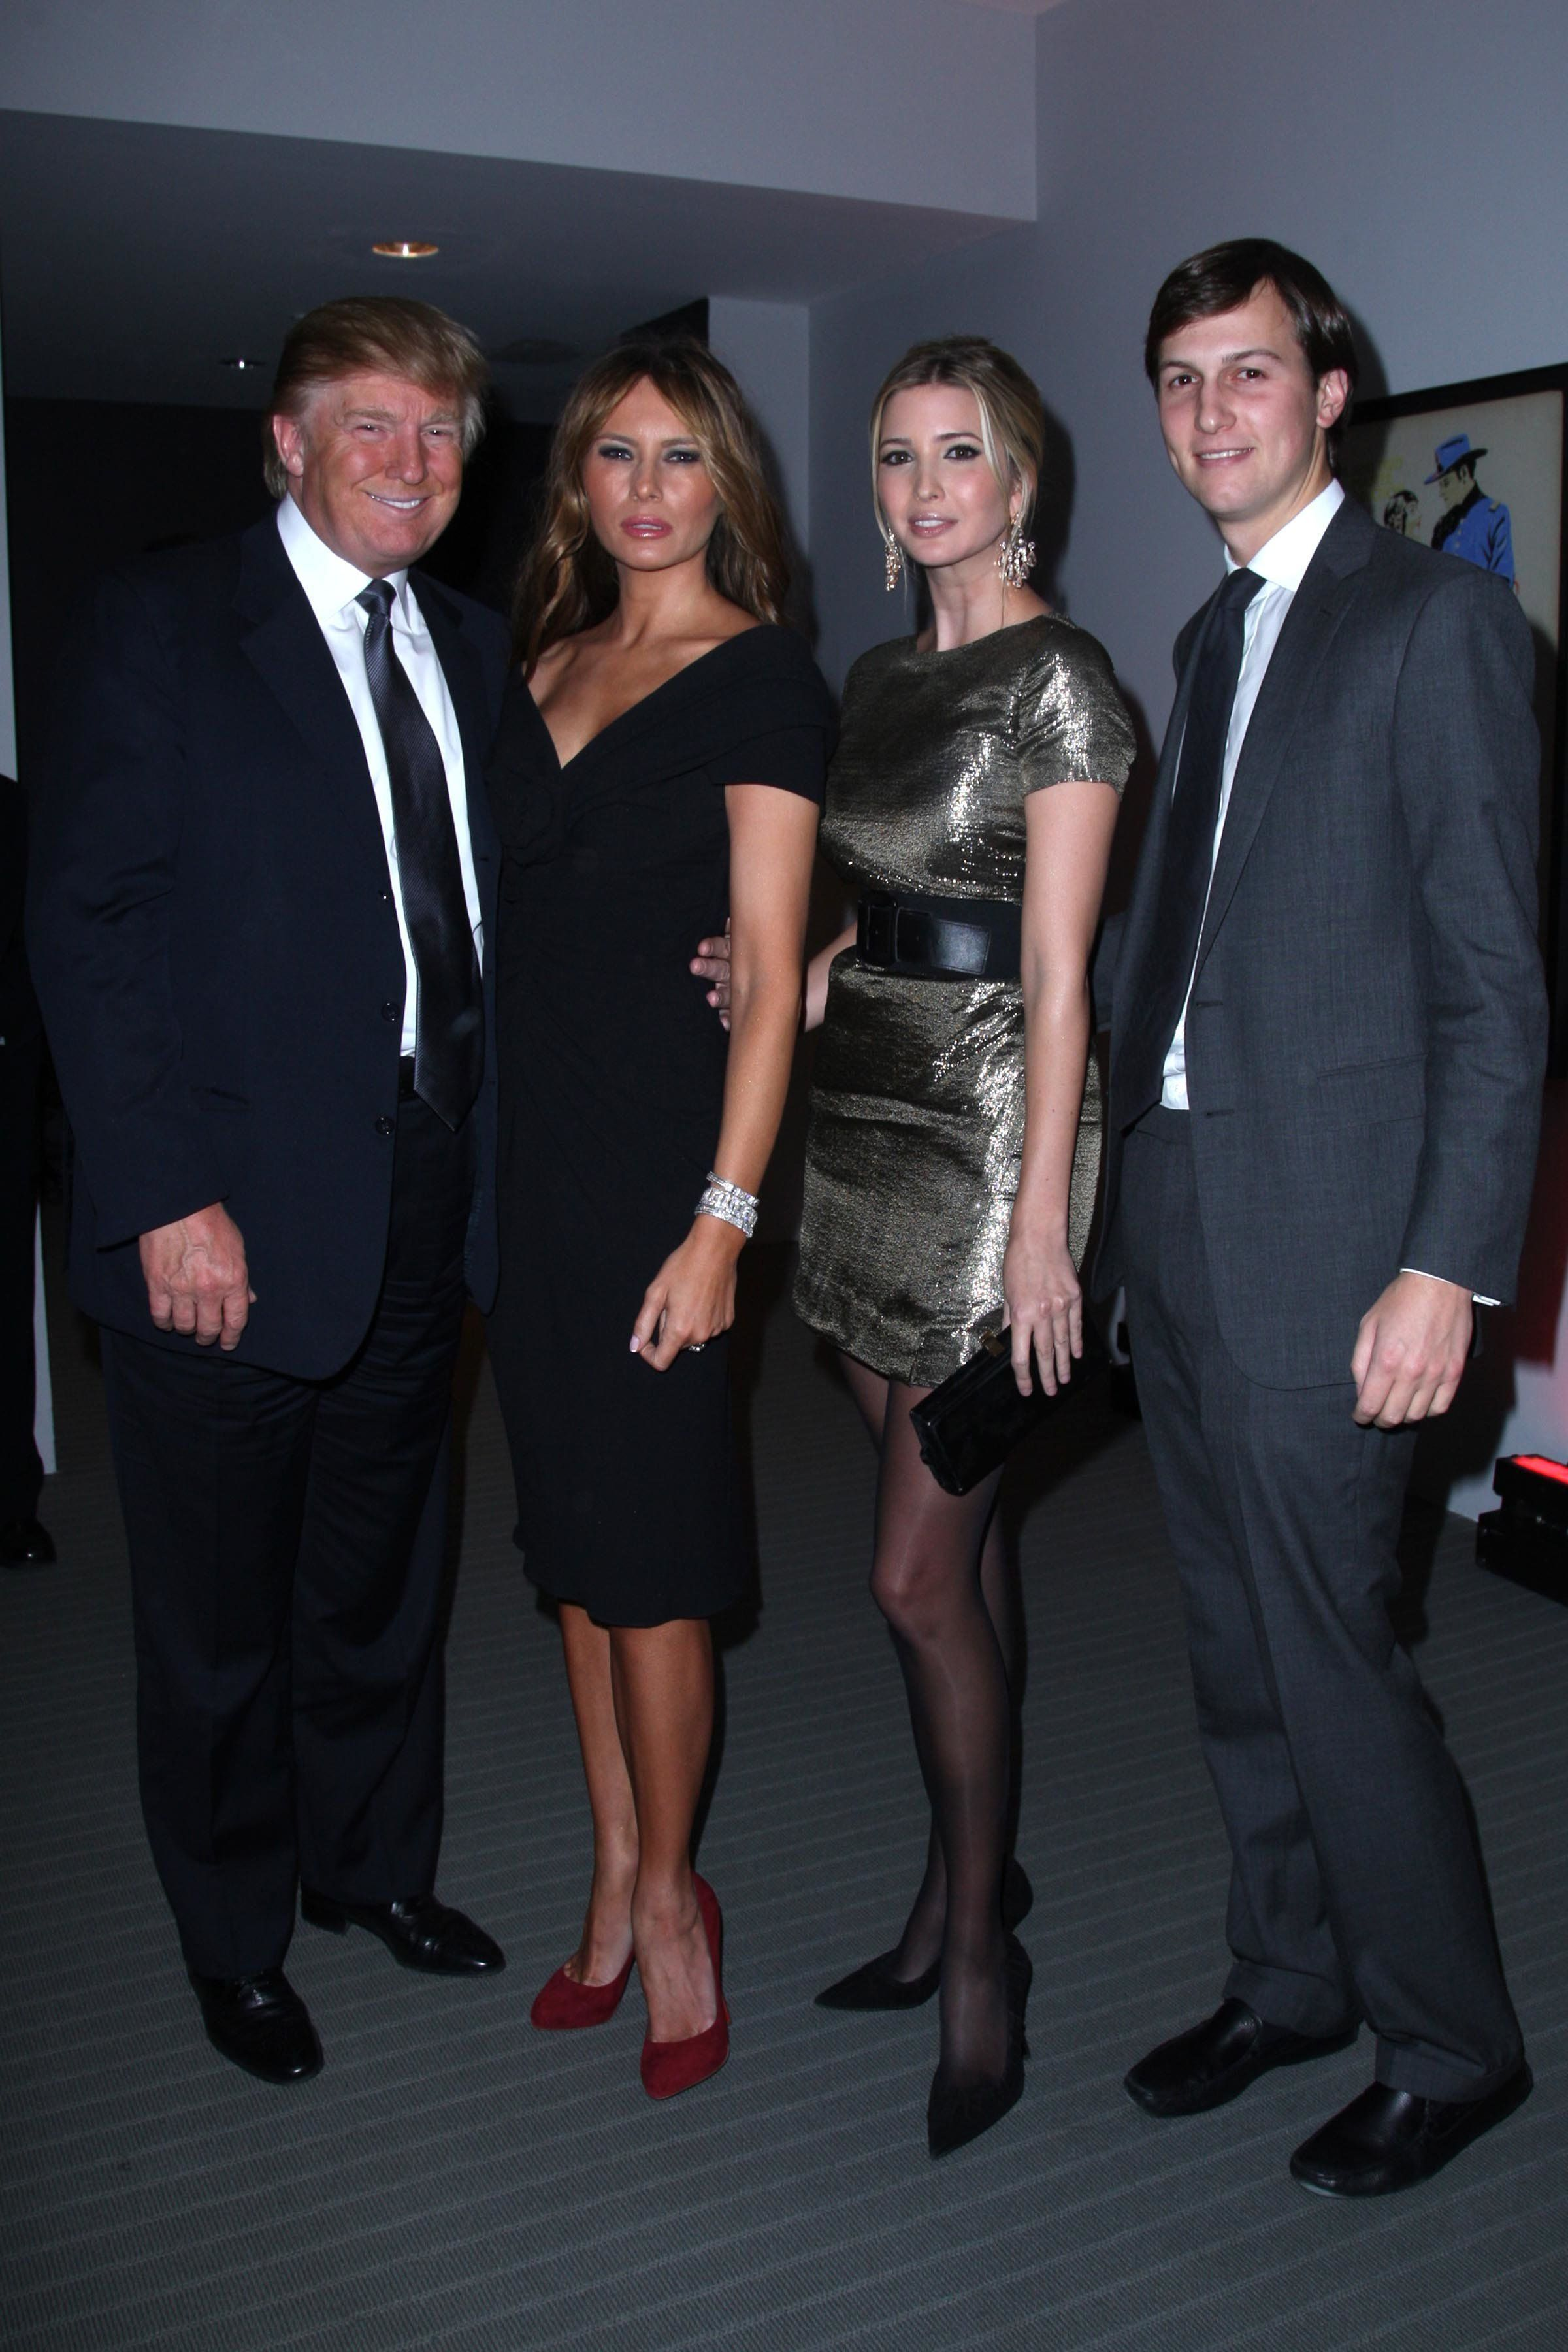 Donald Trump, Melania Trump, Ivanka Trump and Jared Kushner at the Museum of Modern Art on Nov. 10, 2008 in New York Ci